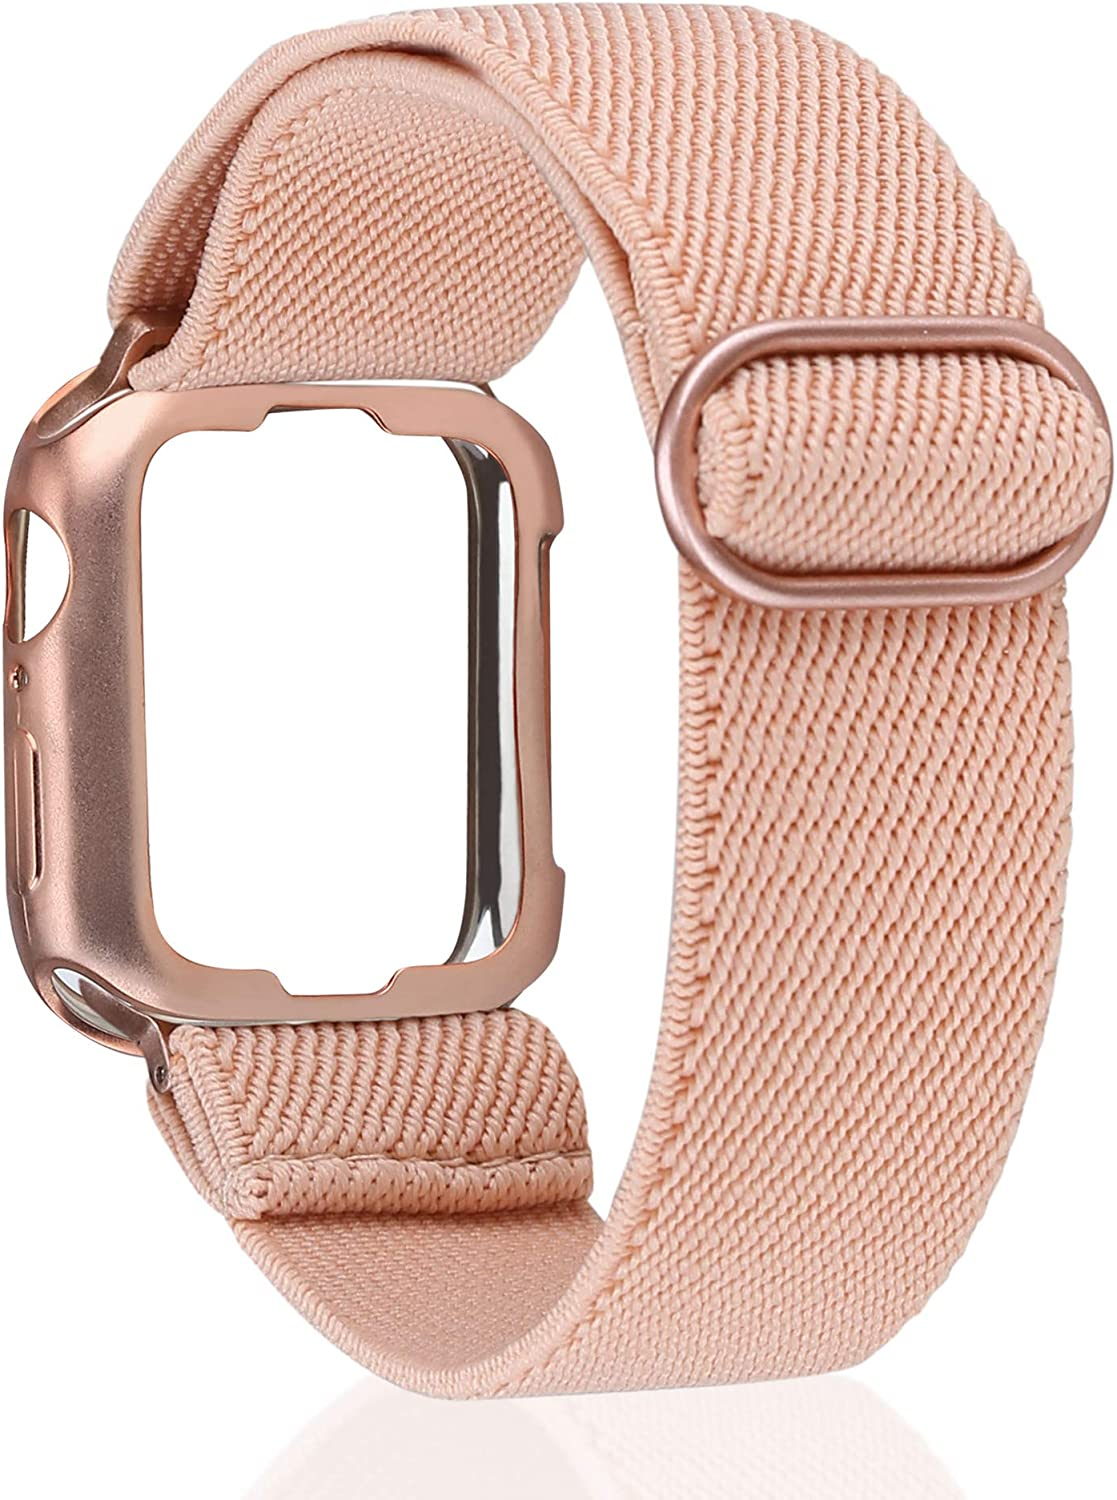 TOYOUTHS Compatible with Apple Watch Band Solo Loop Stretchy with Protective Case Adjustable Elastic Soft Nylon Scrunchies Band with Protector Case for iWatch Series SE/6/5/4/3/2/1 38/40MM